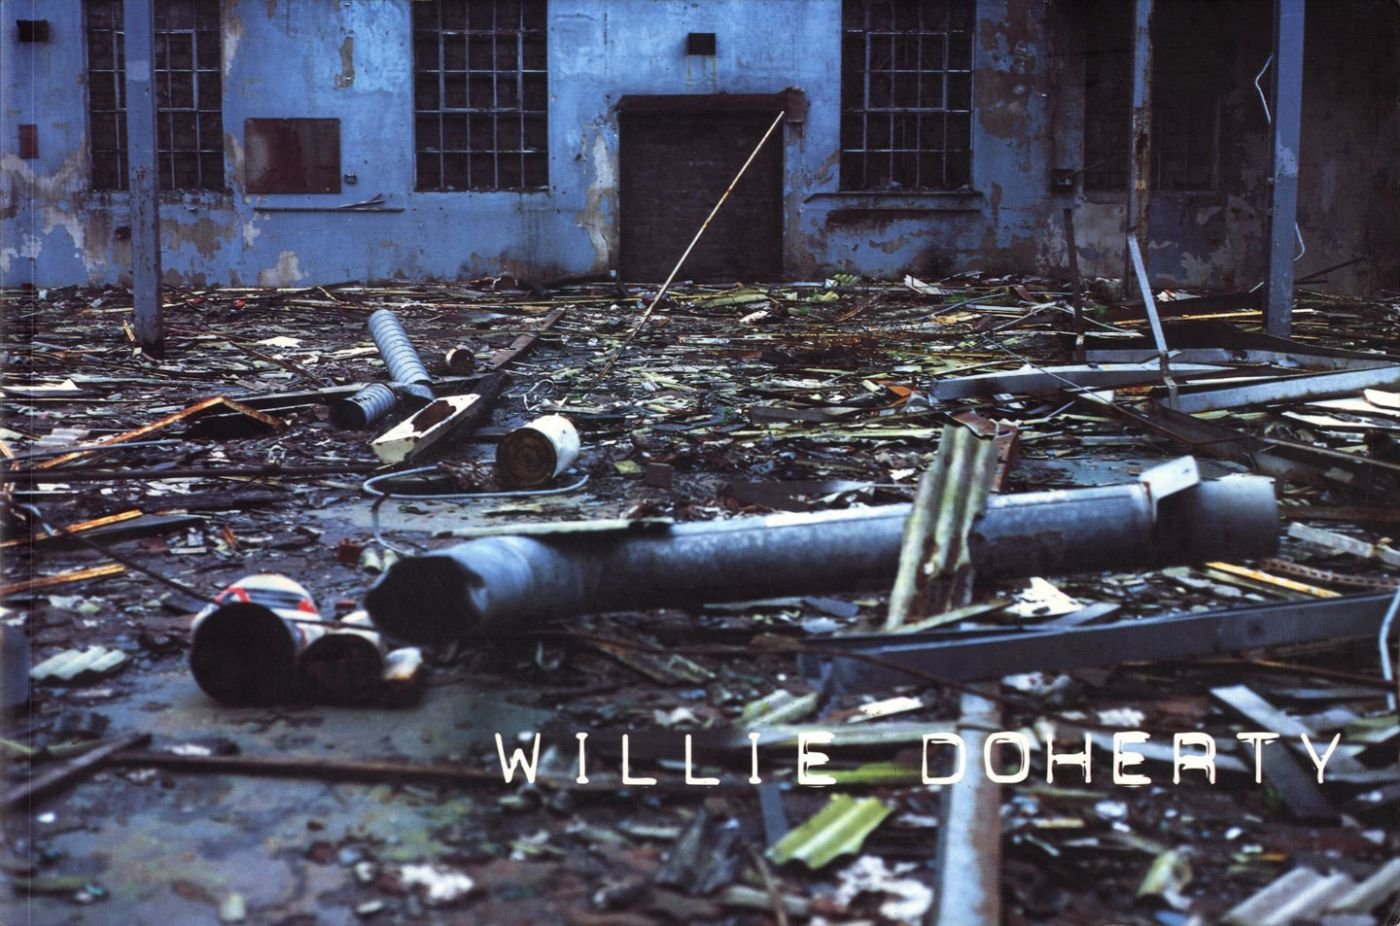 Willie Doherty (Musée d'Art Moderne de la Ville de Paris)